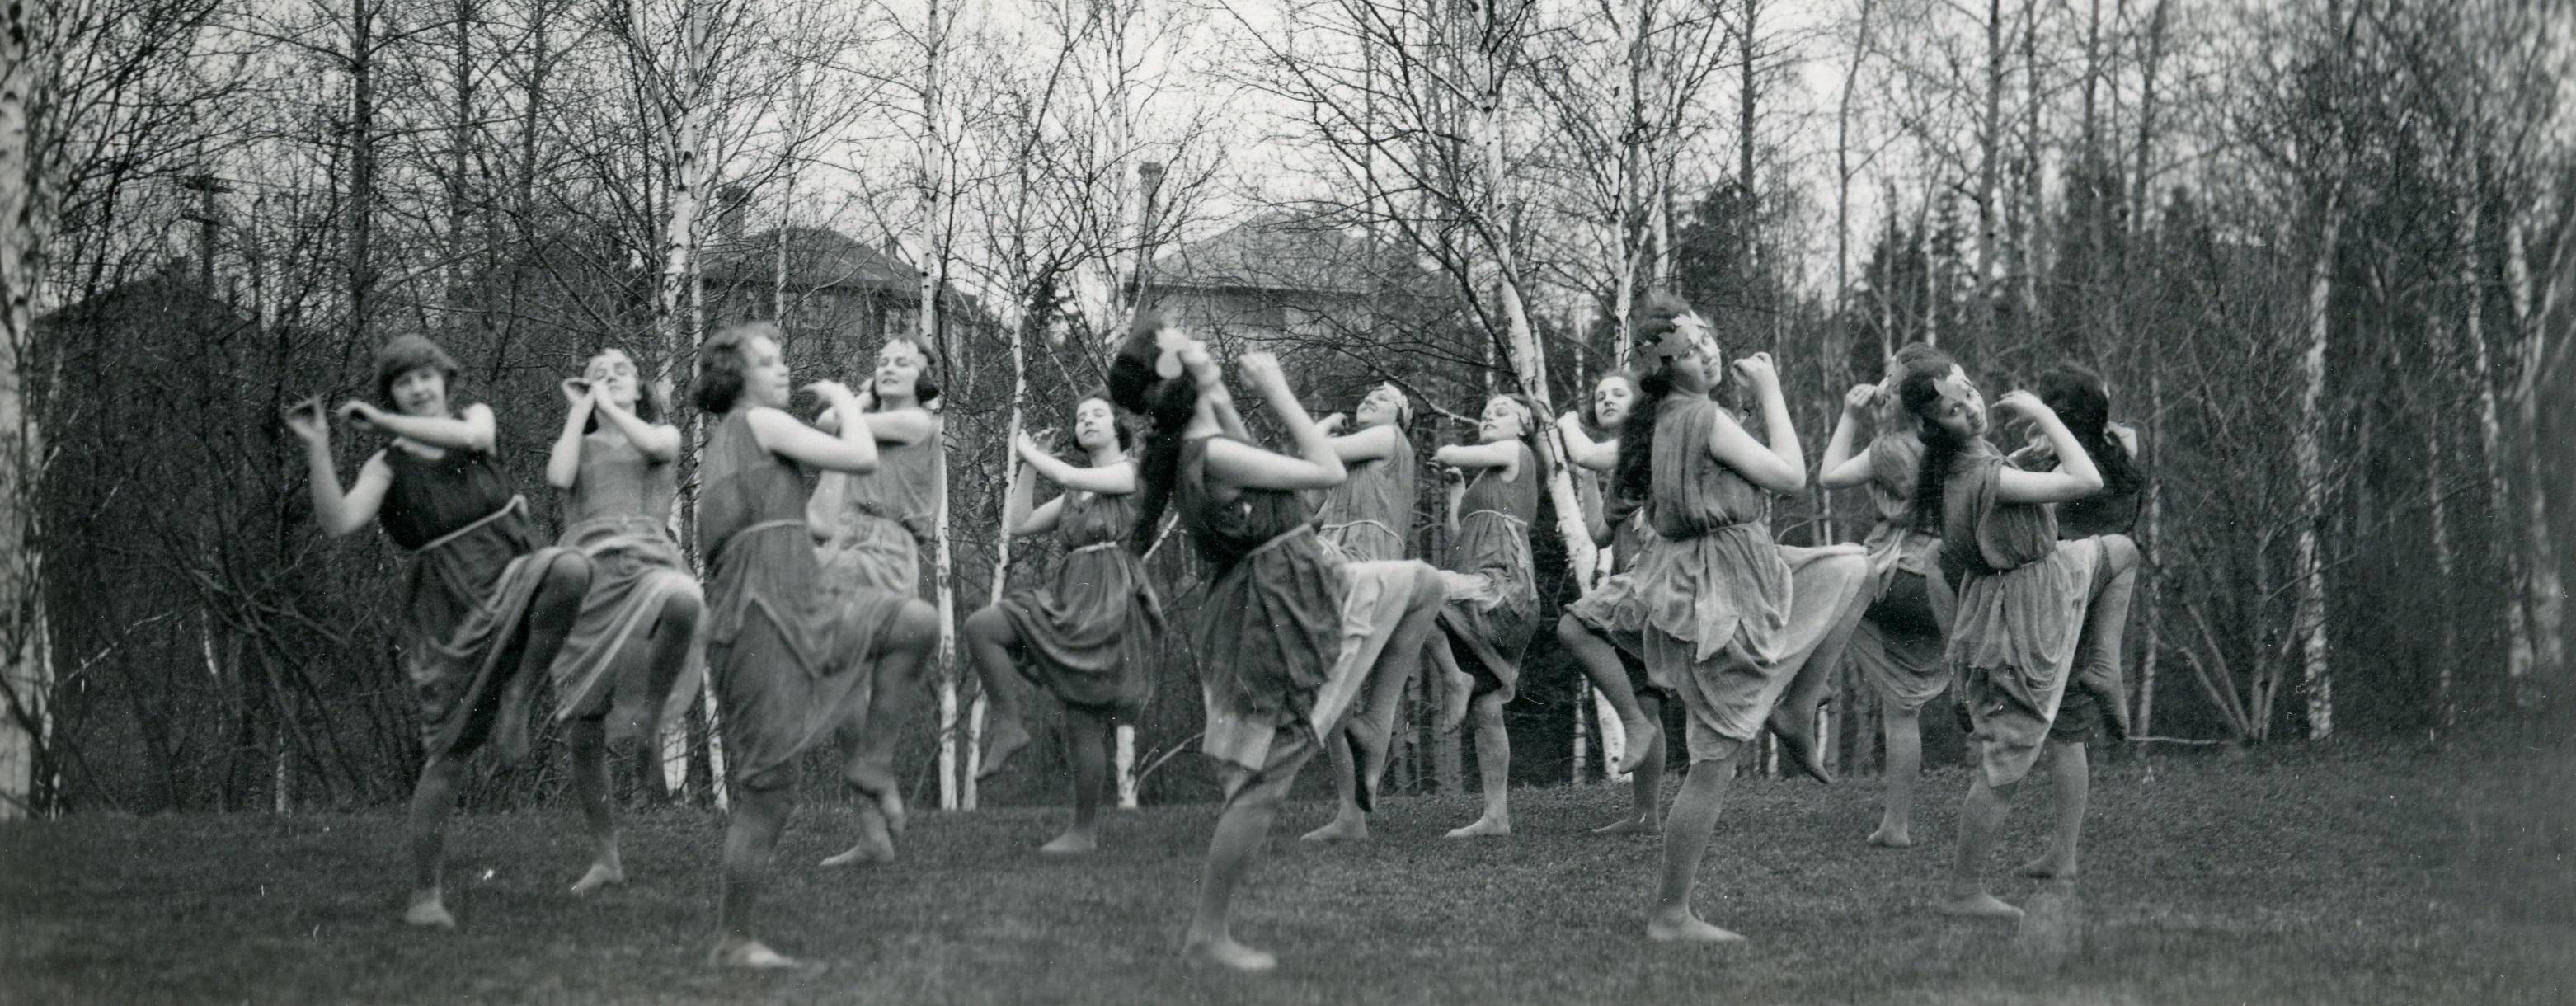 Students Dancing in Circle